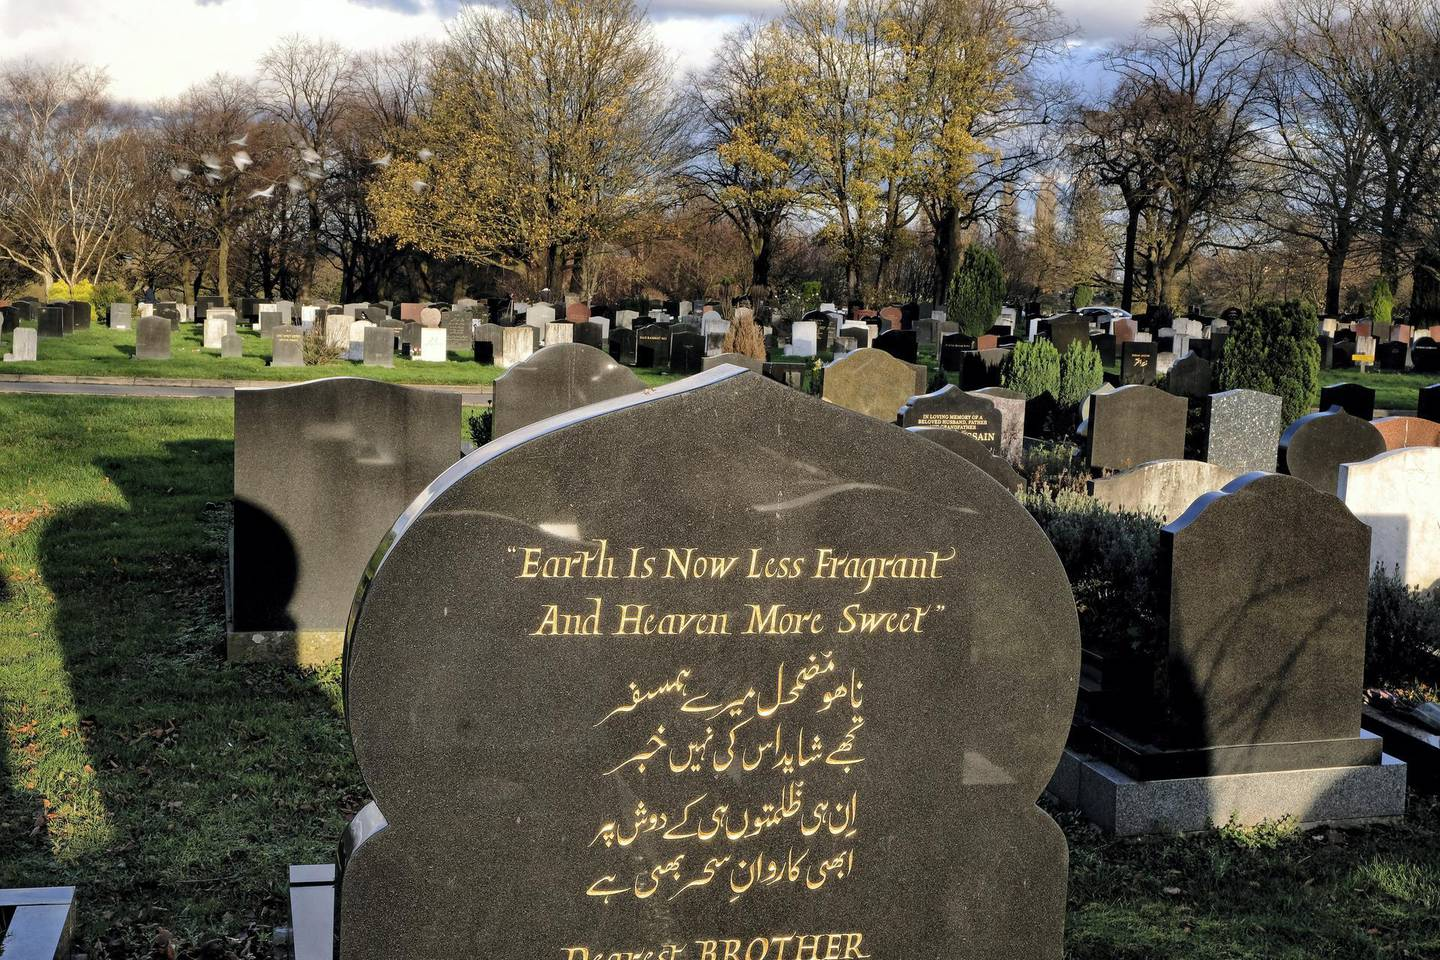 Muslim graves at Handsworth Cemetery, Birmingham, 19-11-2020.Photos by John Robertson for The National.